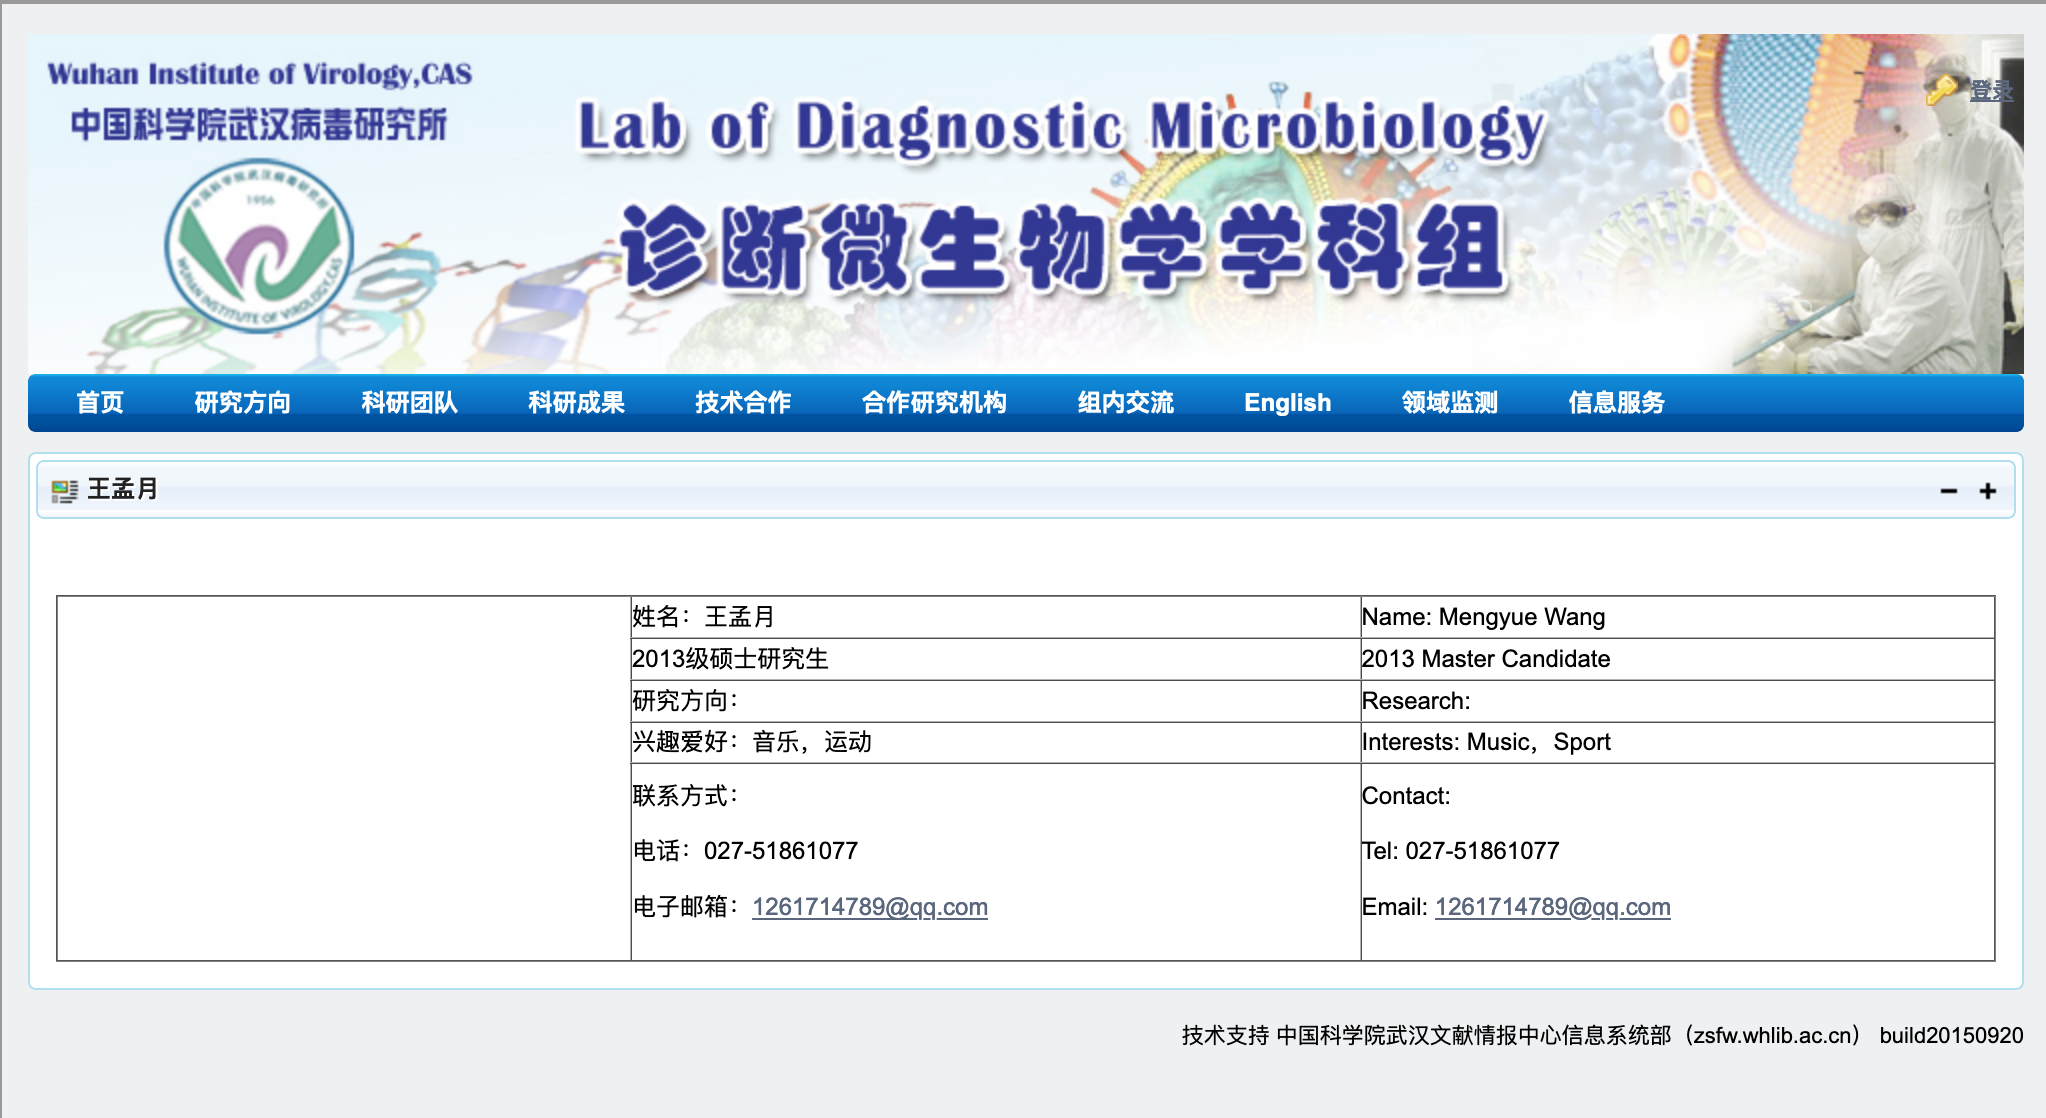 Evidence SARS CoV 2 Emerged From A Biological Lab In Wuhan